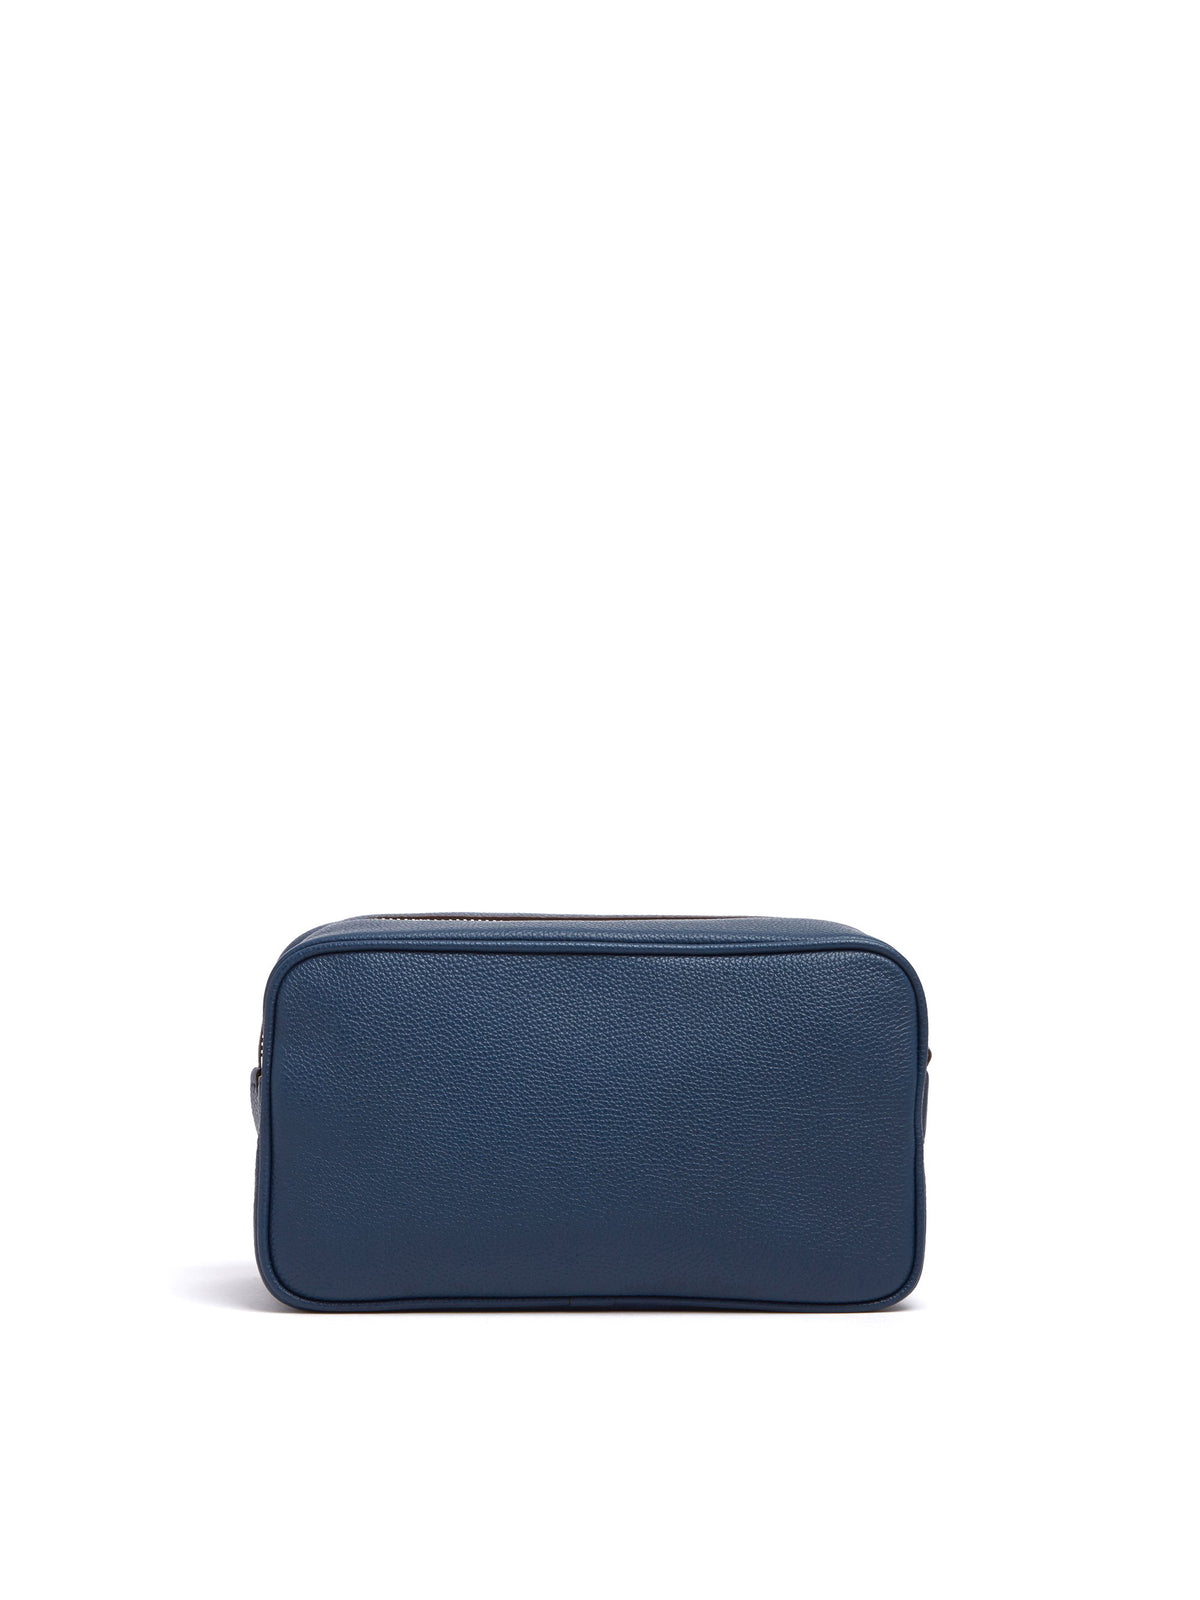 Mark Cross Leather Wash Bag Tumbled Grain Navy Back